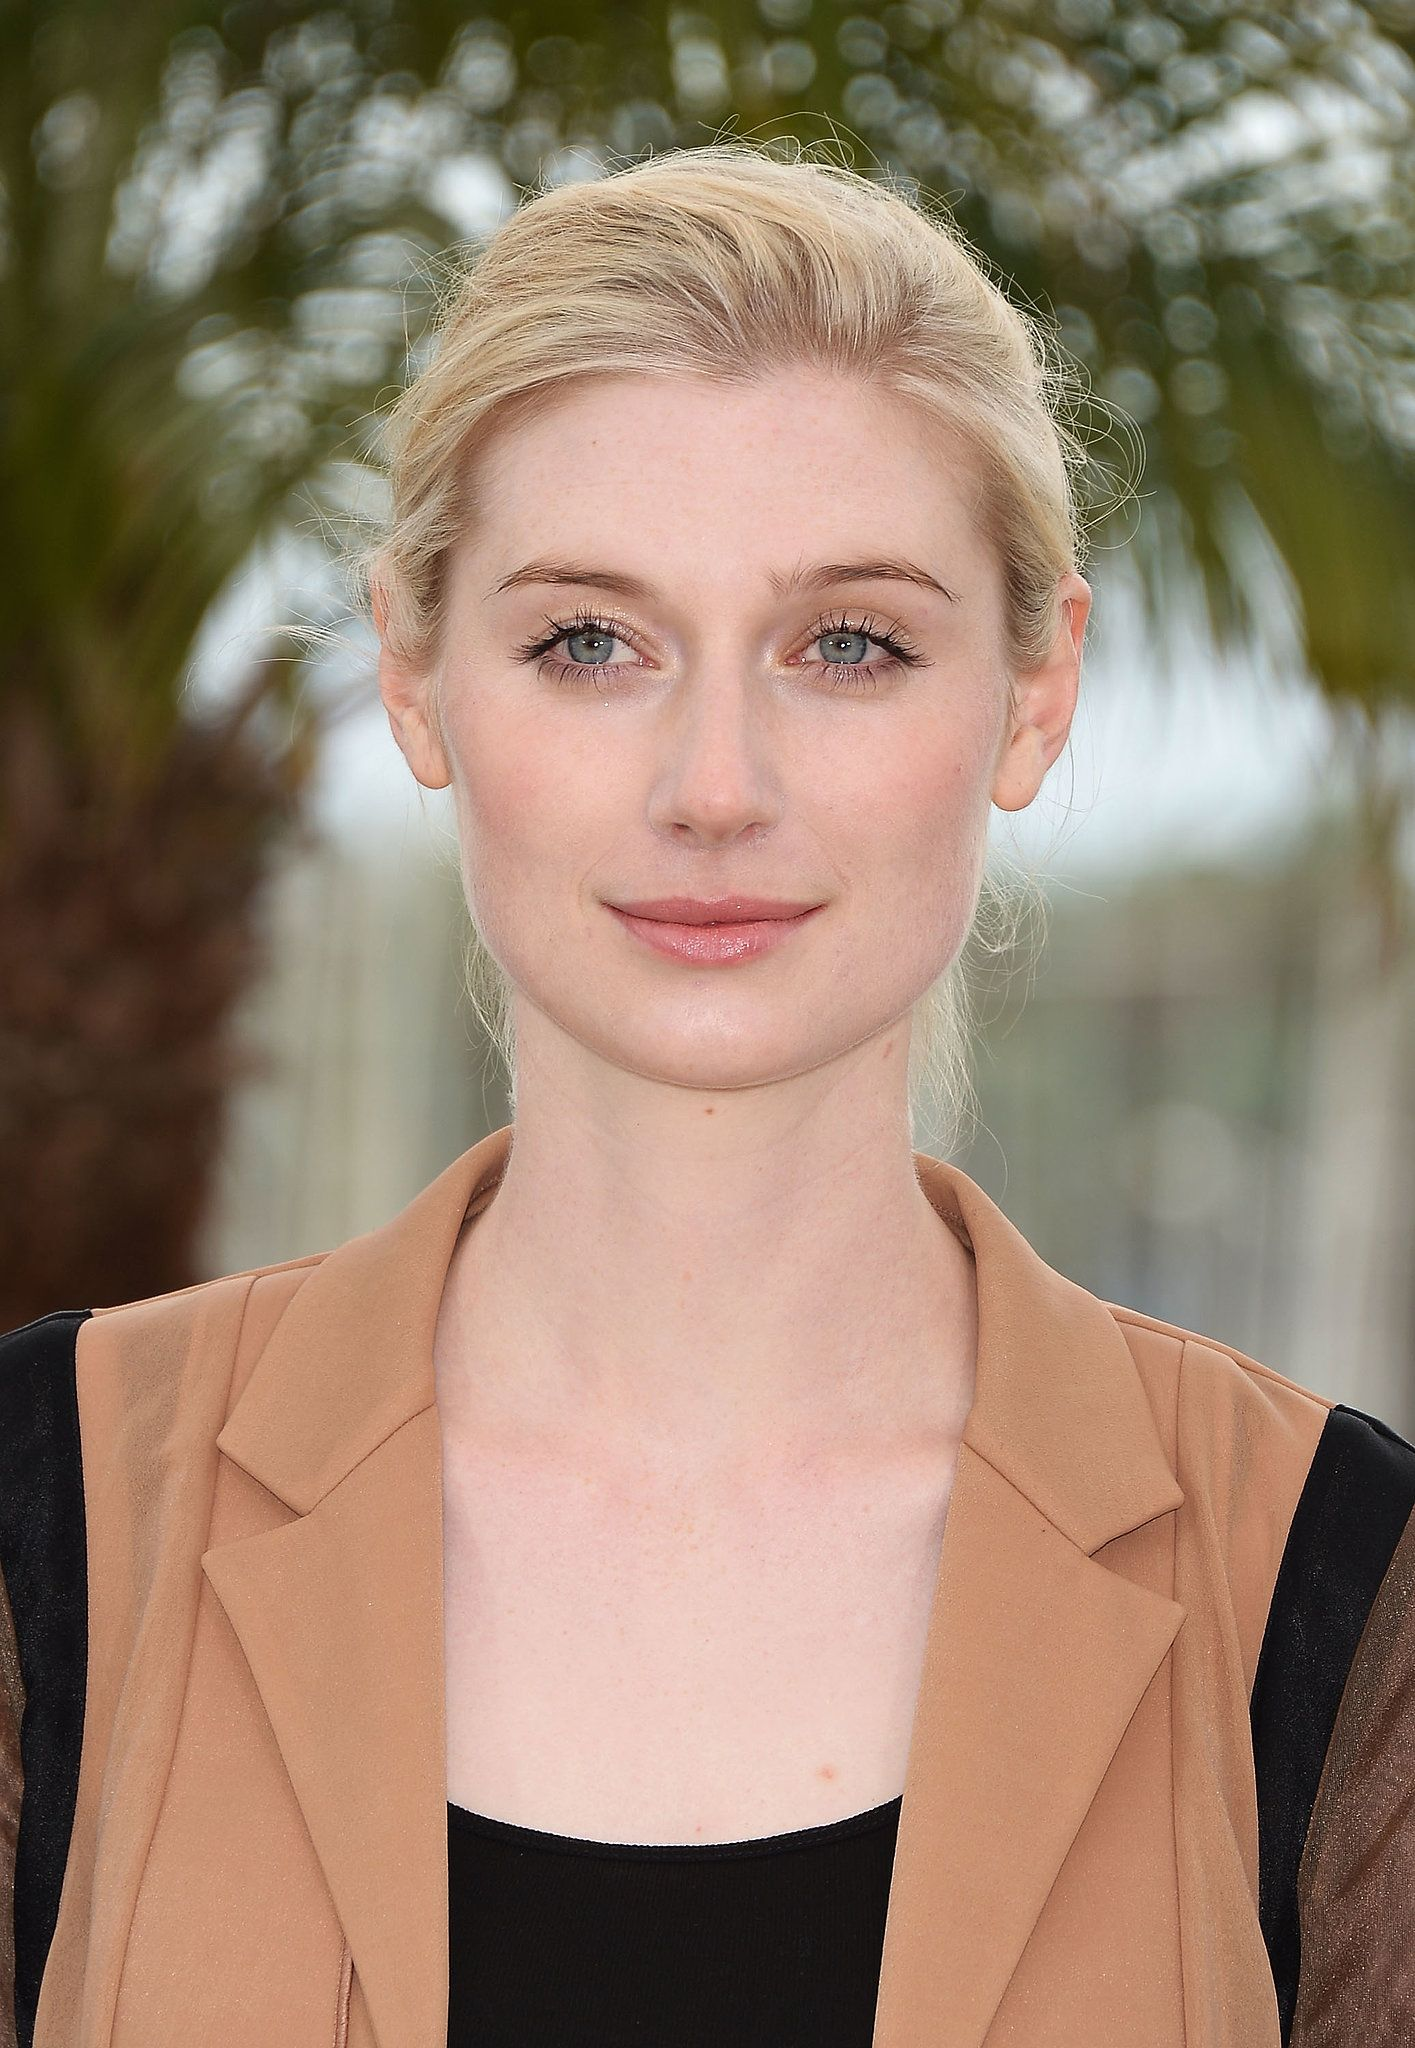 2019 Elizabeth Debicki naked (19 photo), Tits, Cleavage, Boobs, bra 2020